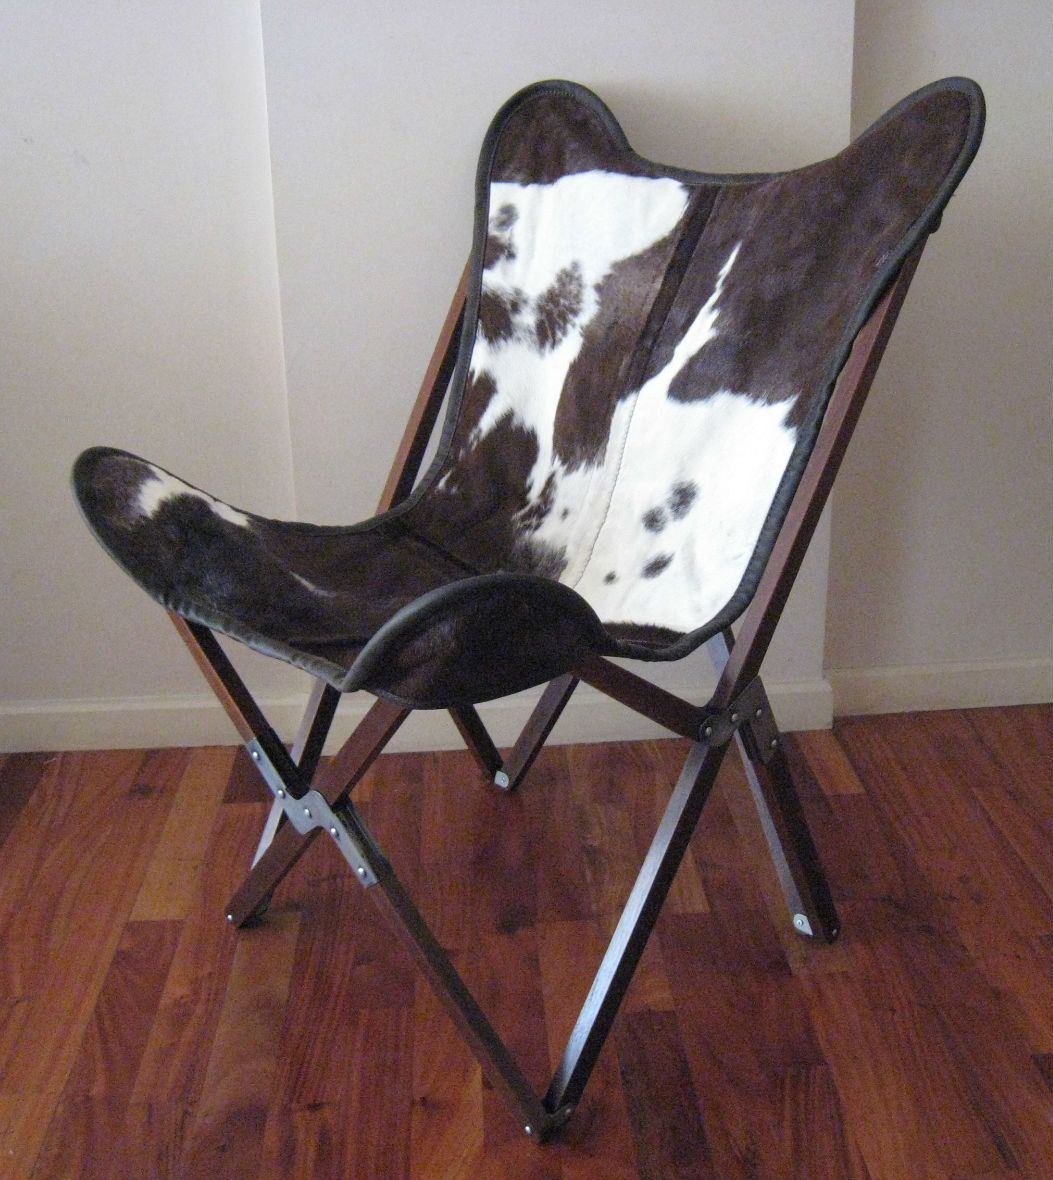 original butterfly chair tripo hand made wooden frame cowhide cover cow skin hide chairs 565. Black Bedroom Furniture Sets. Home Design Ideas